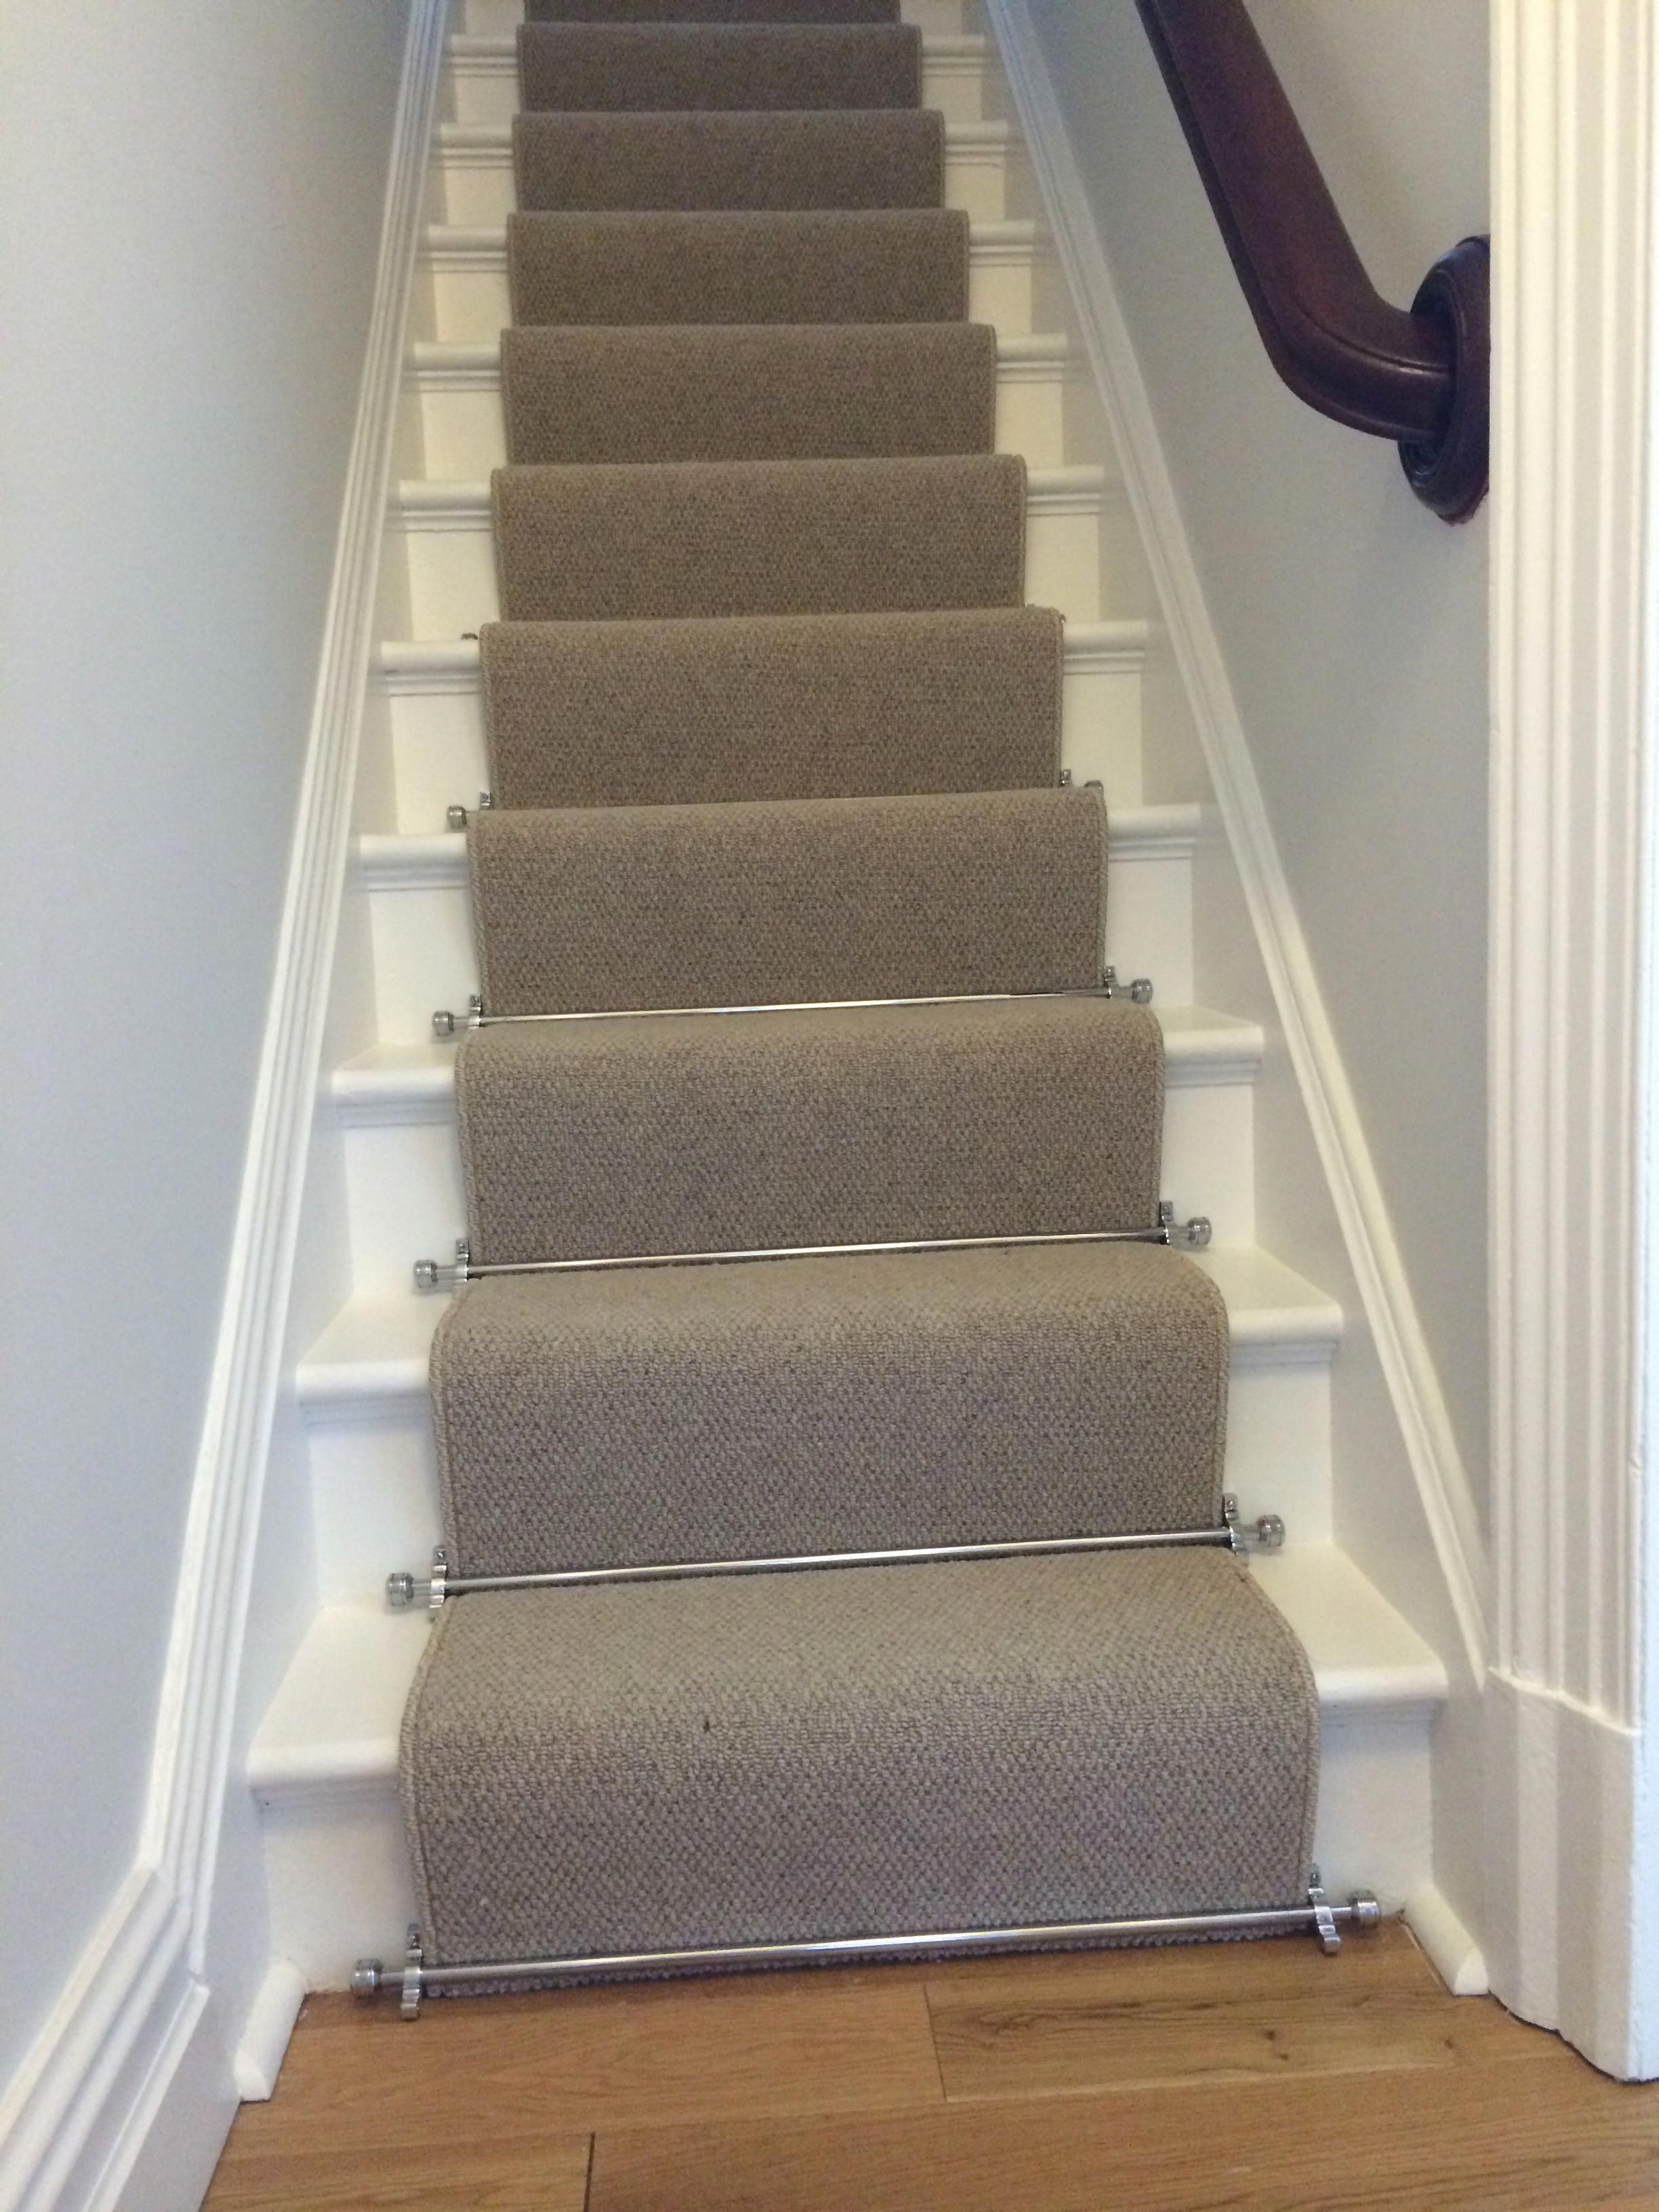 how to measure for carpet runner on stairs